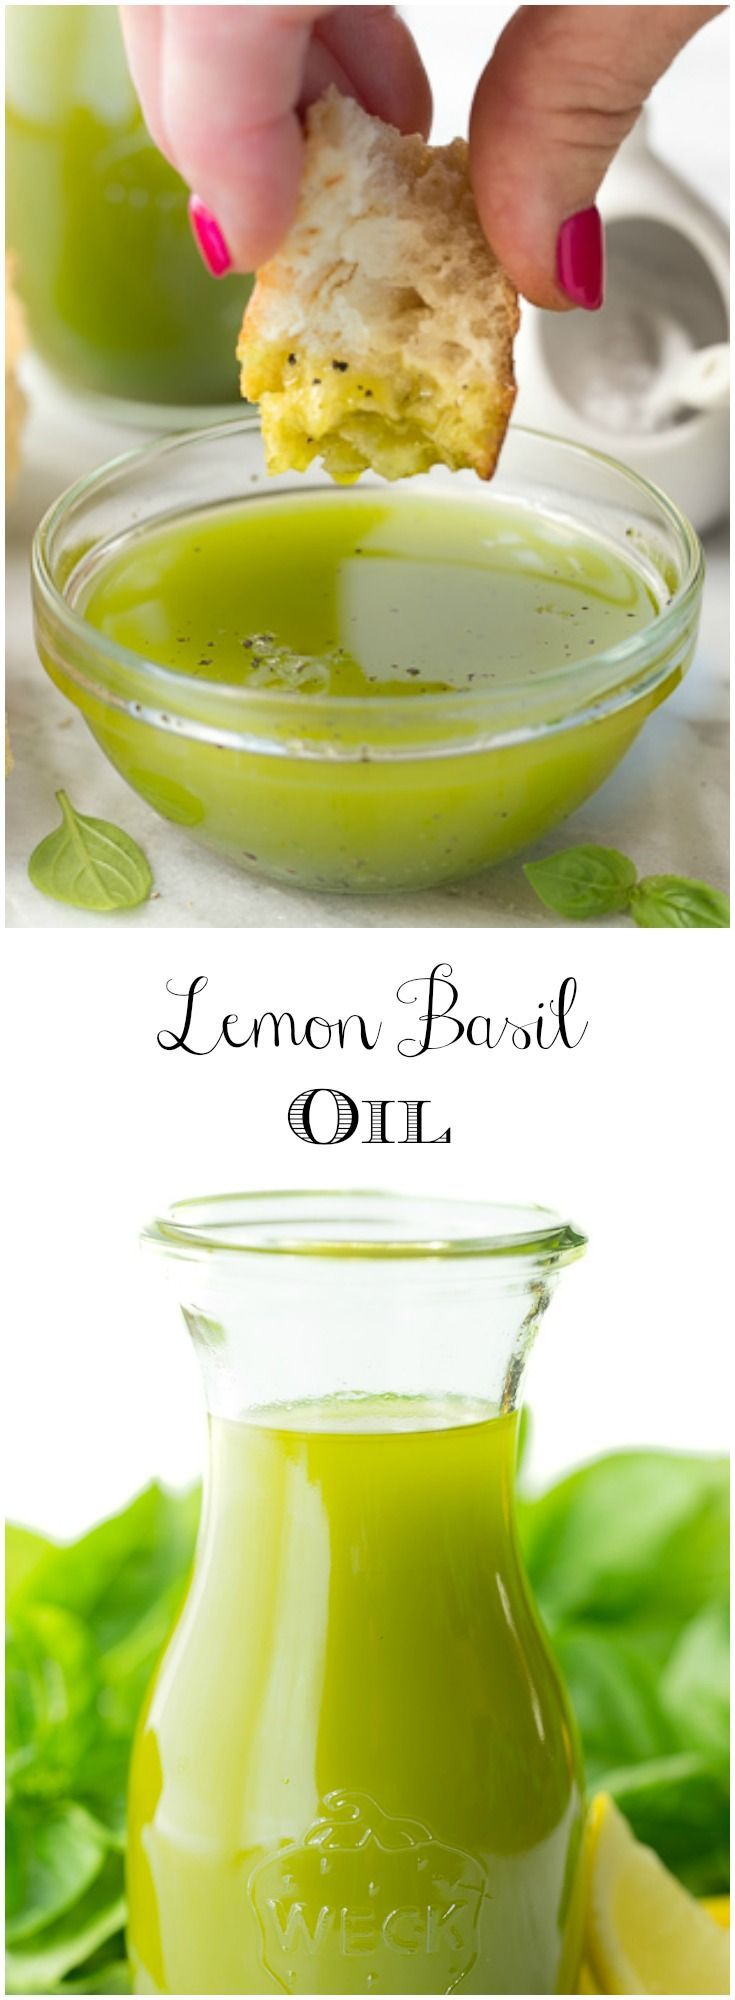 A delicious condiment bursting with the summery flavors of fresh basil and lemon. Delightful for dipping and drizzling!